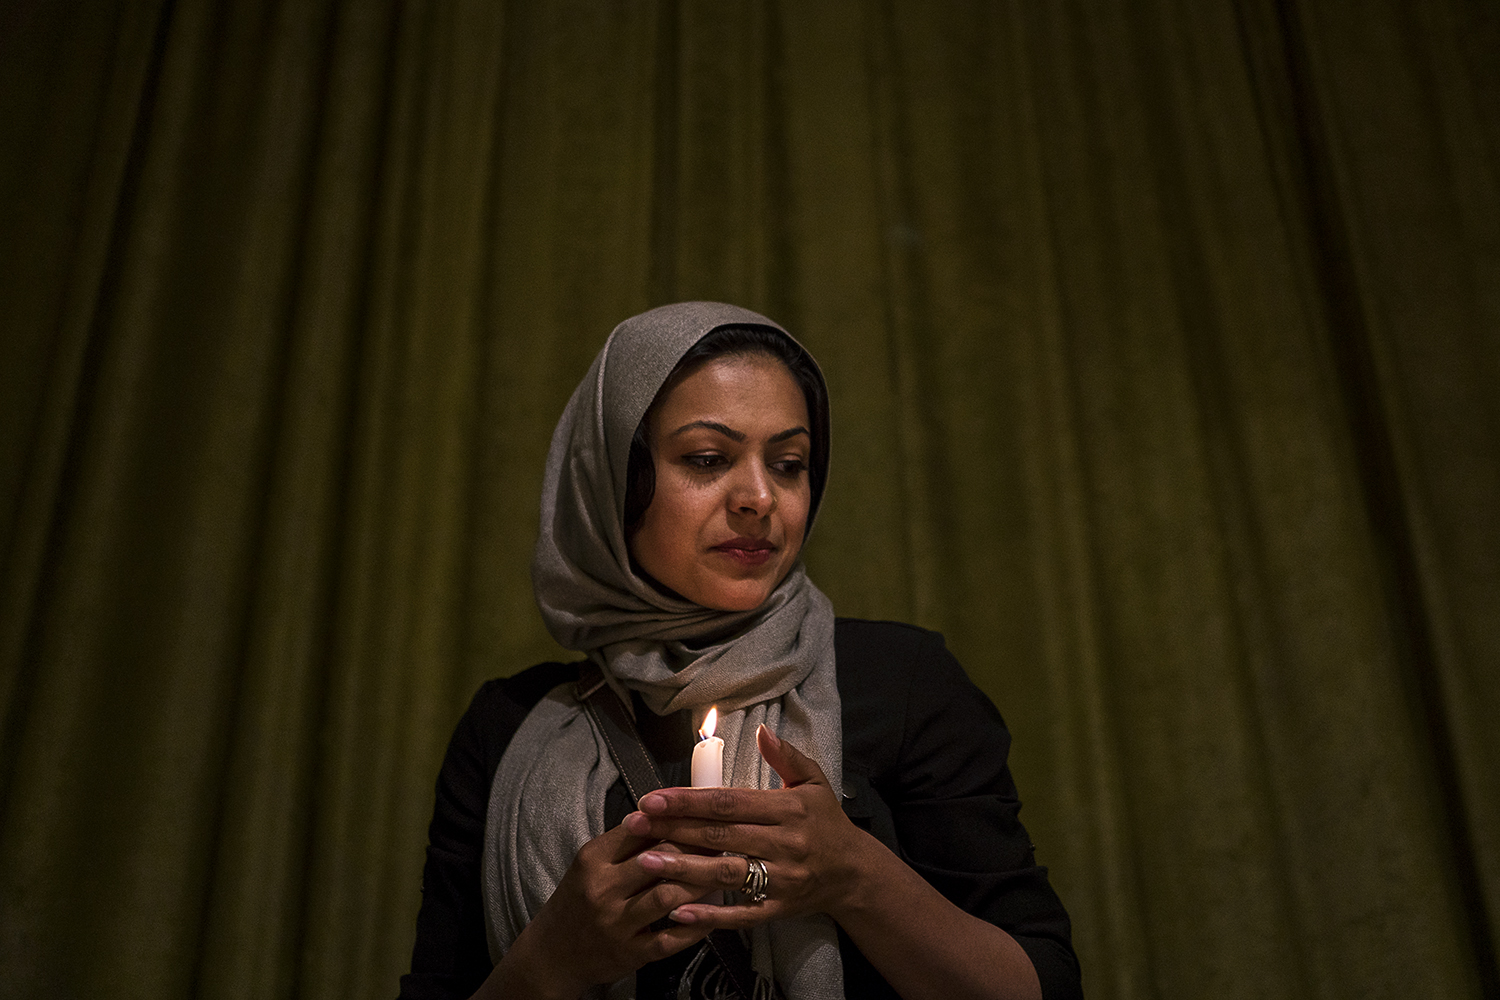 """Dearborn Heights resident Sara Syeda carefully holds a candle after helping light a small arrangement of candles forming the word """"peace"""" before a vigil on Thursday, June 16, 2016 at the Islamic House of Wisdom in Dearborn Heights. Tim Galloway/Special to DFP"""